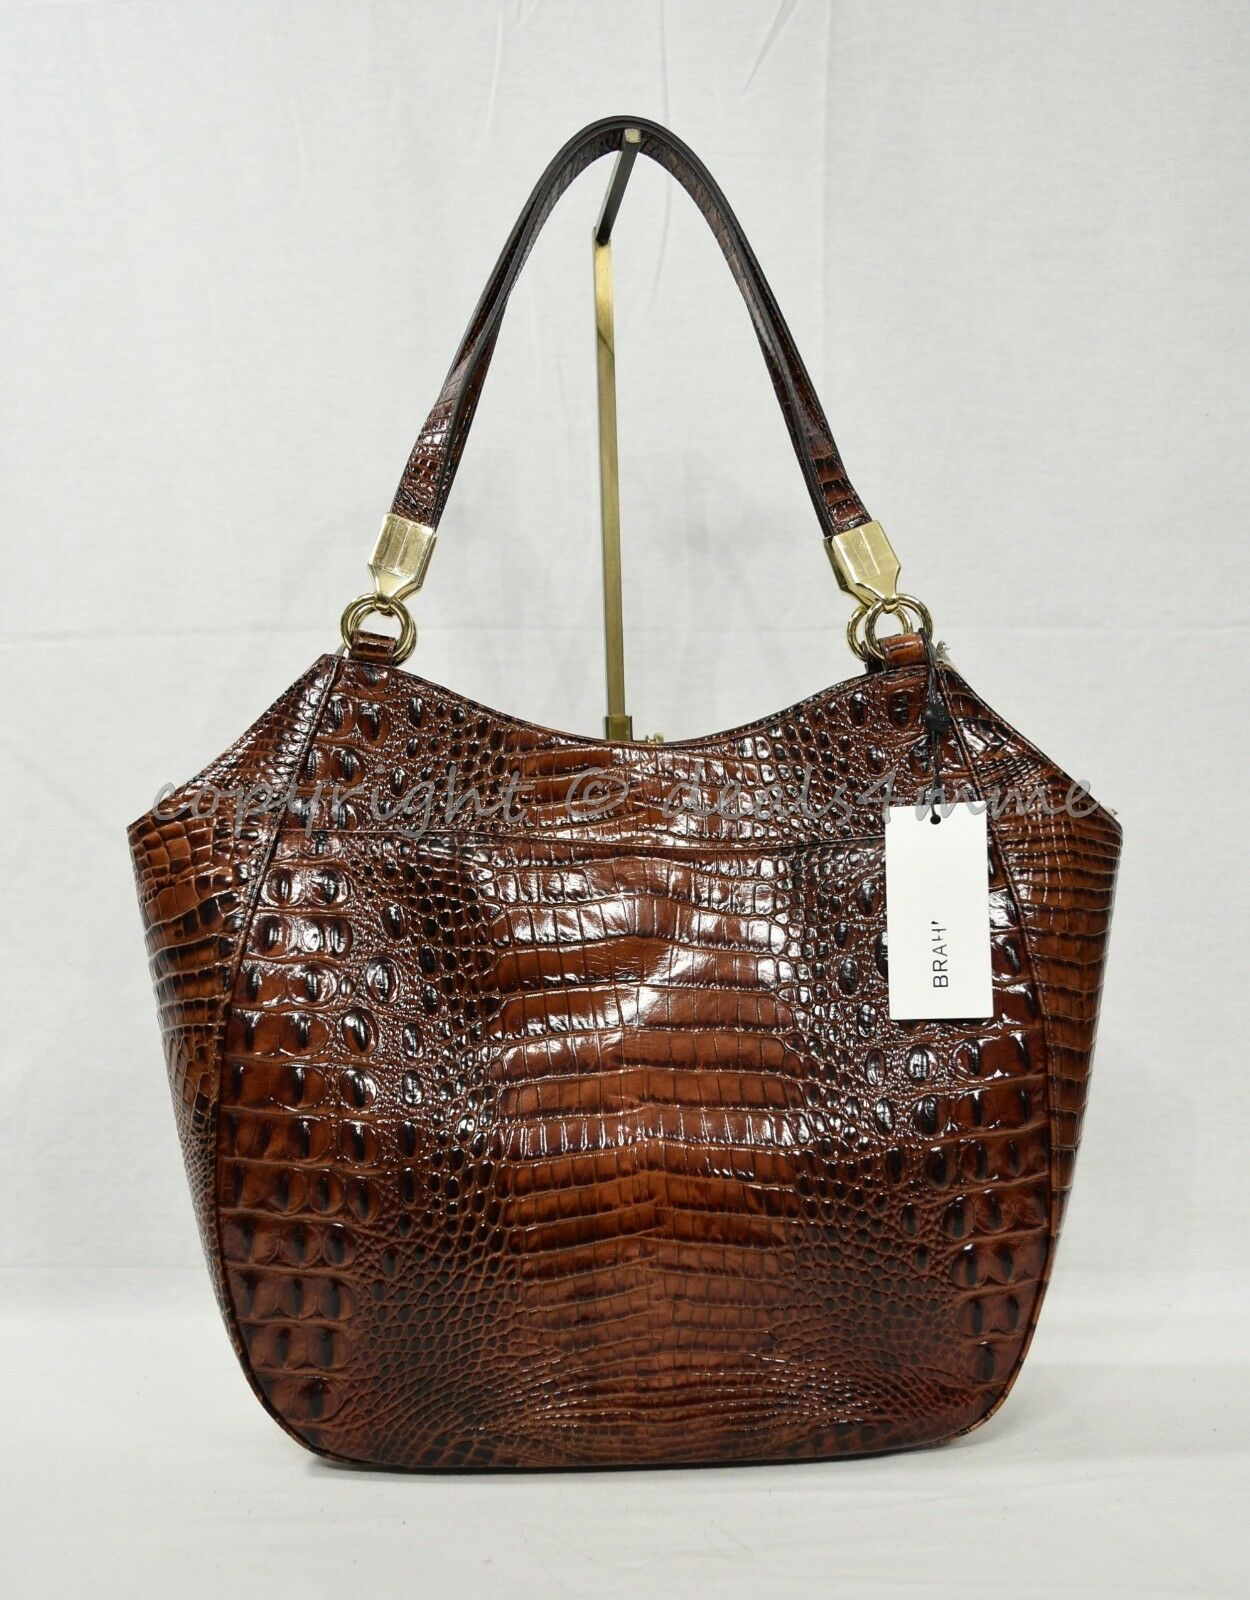 NWT Brahmin Marianna Leather Tote / Shoulder Bag in Pecan Melbourne image 3